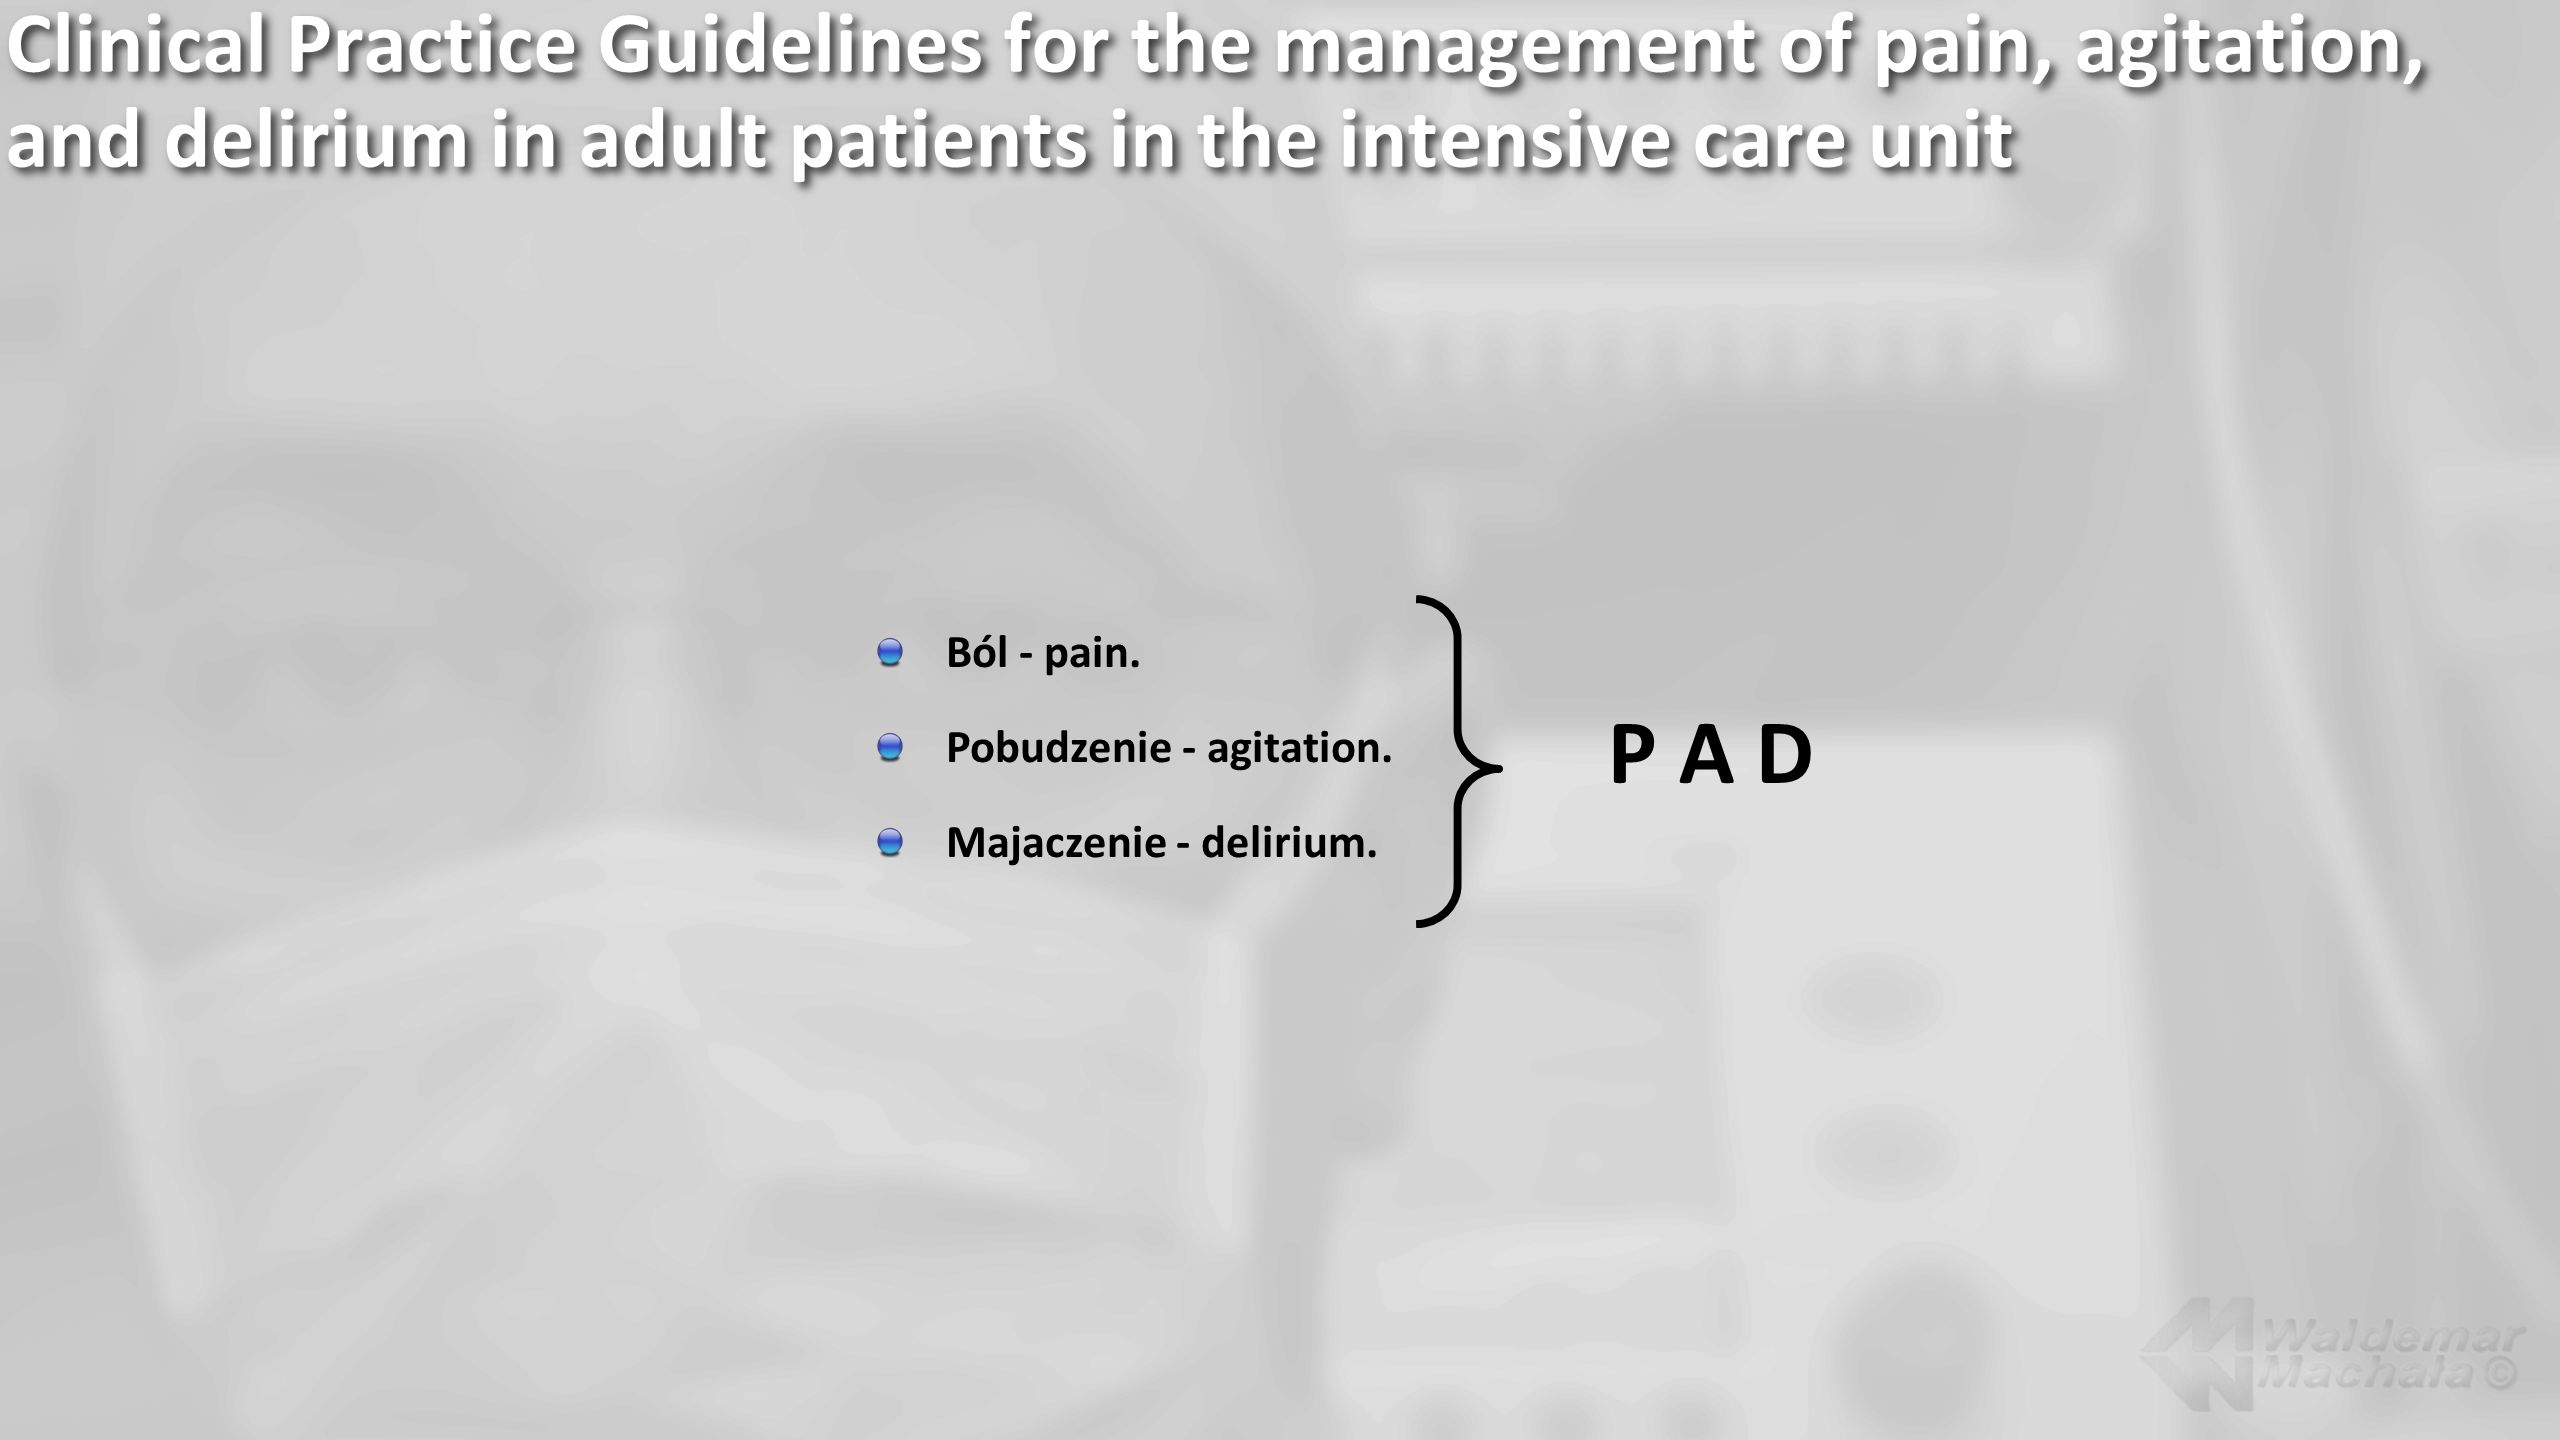 Clinical Practice Guidelines for the management of pain, agitation, and delirium in adult patients in the intensive care unit Ból - pain.